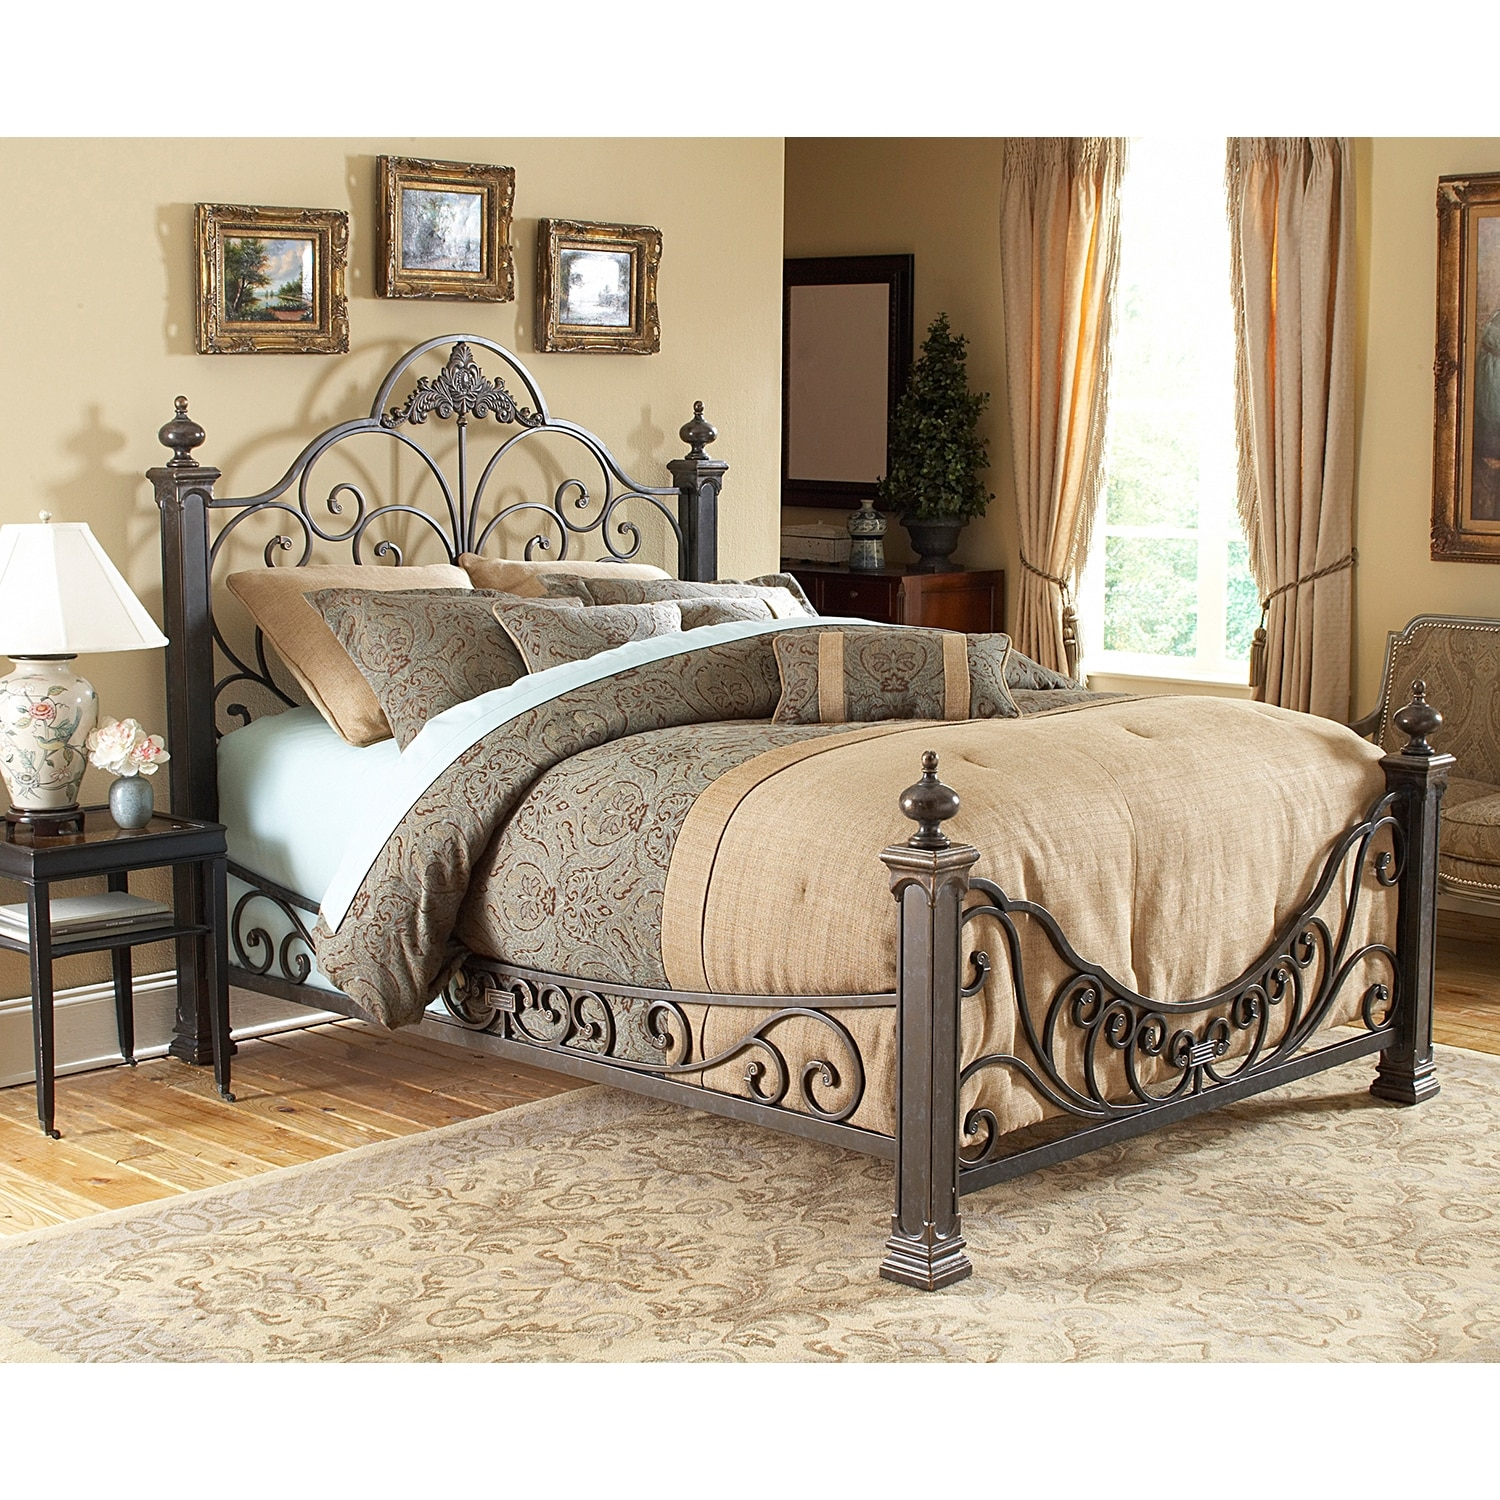 Leons Furniture Kitchener Bedroom Furniture Leons